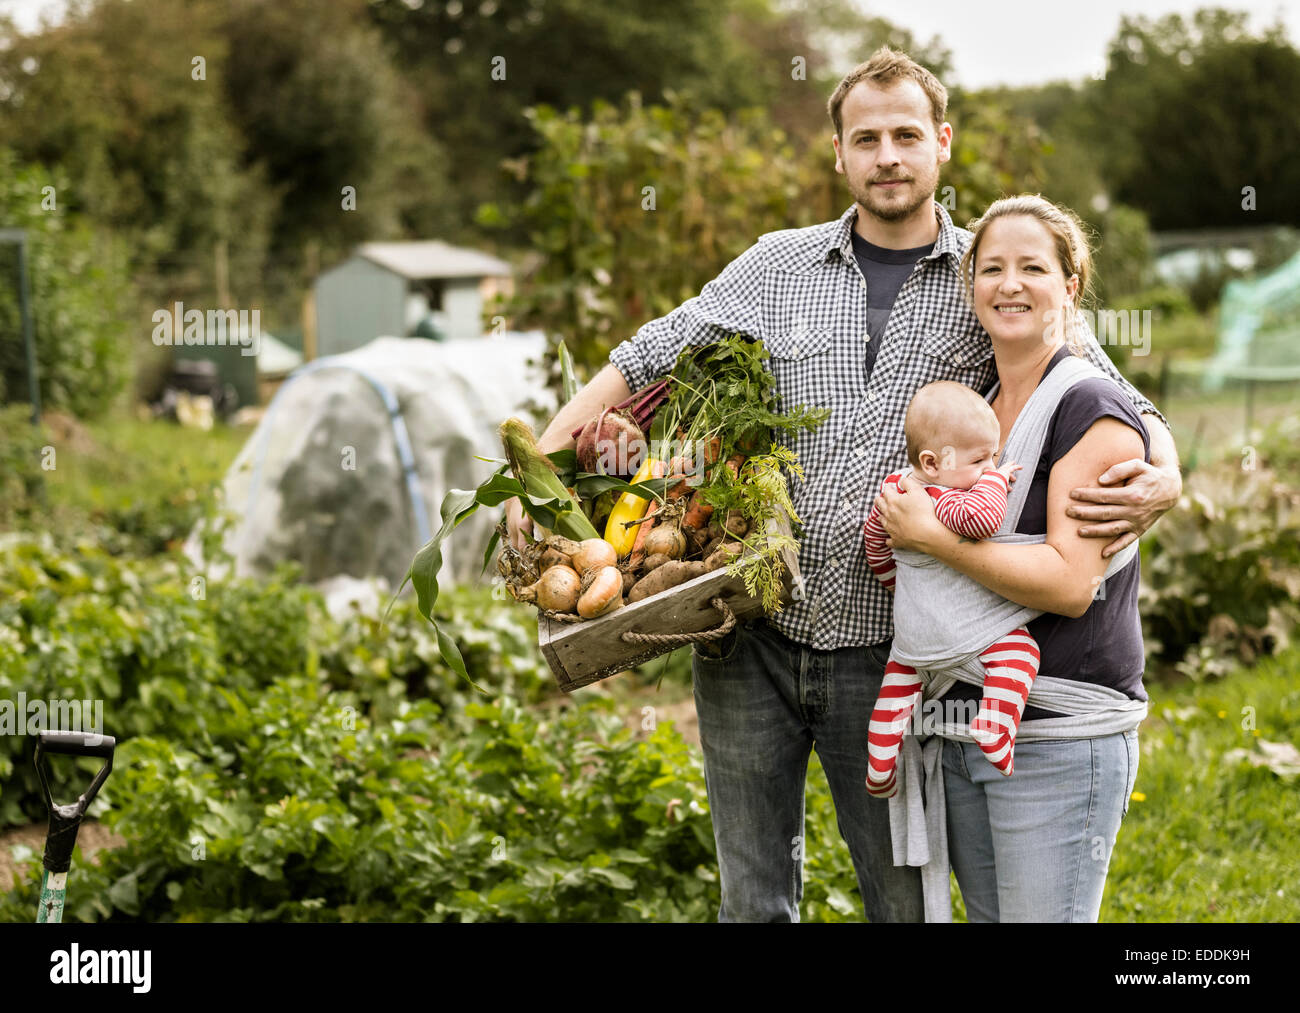 Young family standing in their allotment, smiling. Man holding a box full of freshly picked vegetables. - Stock Image